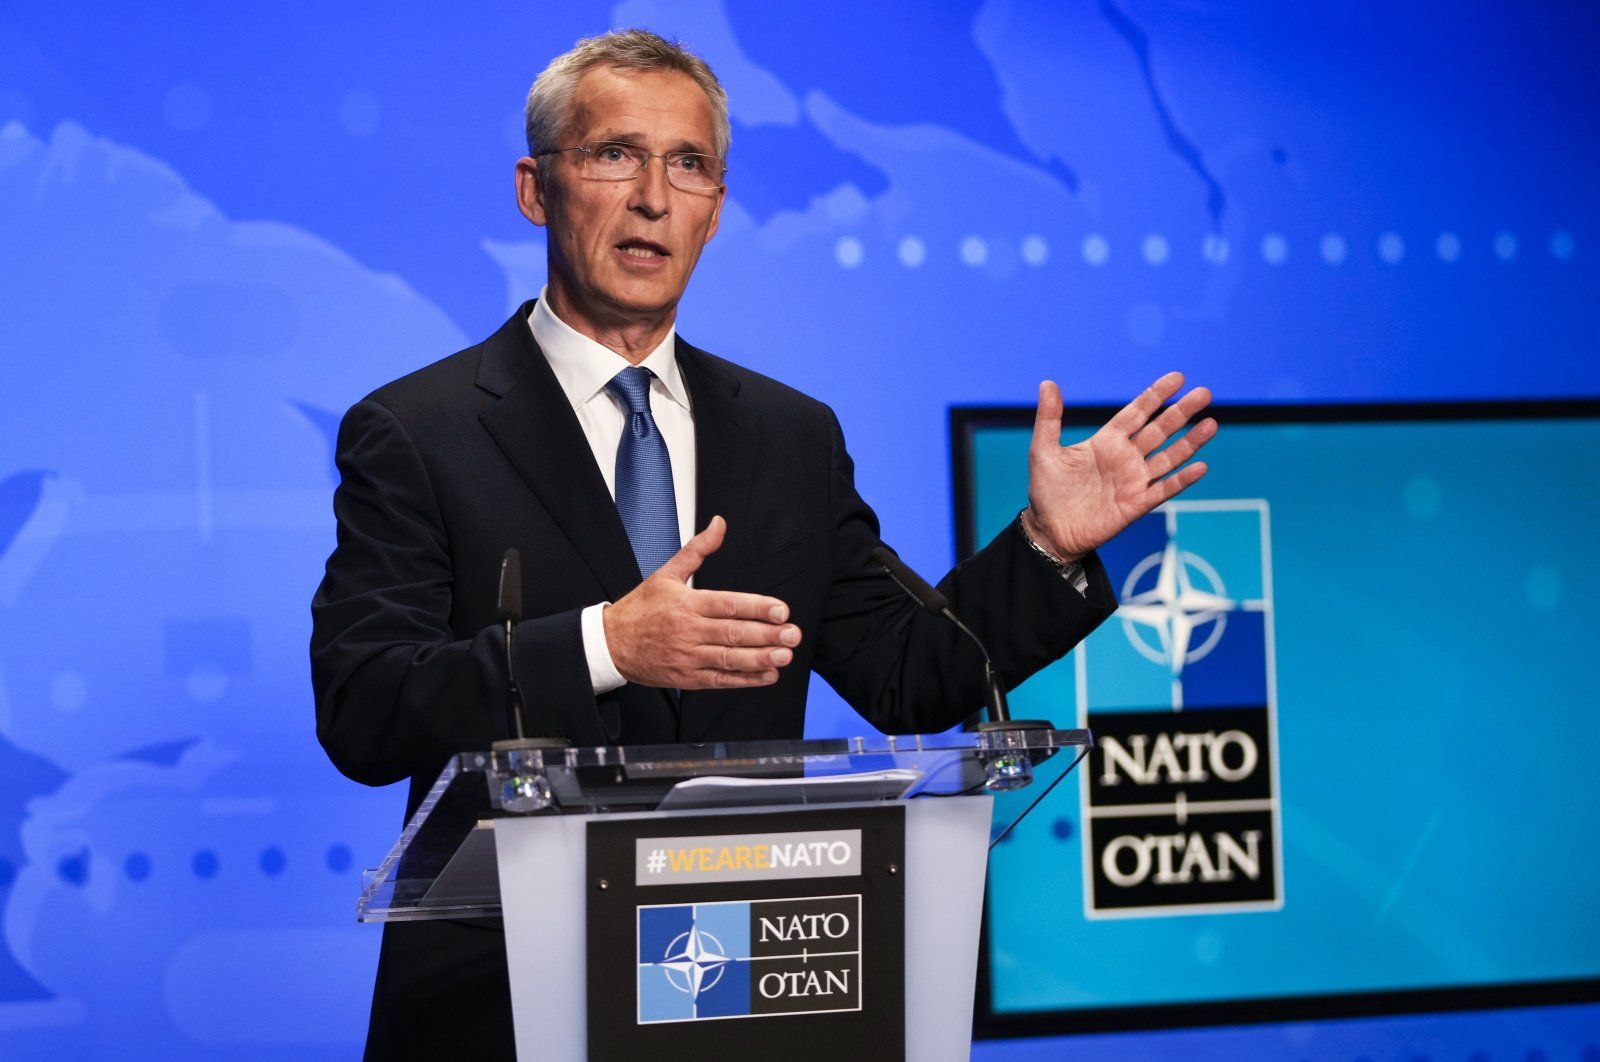 NATO Secretary General Jens Stoltenberg gestures during an online news conference at NATO headquarters in Brussels, Aug. 20, 2021. (AP Photo)